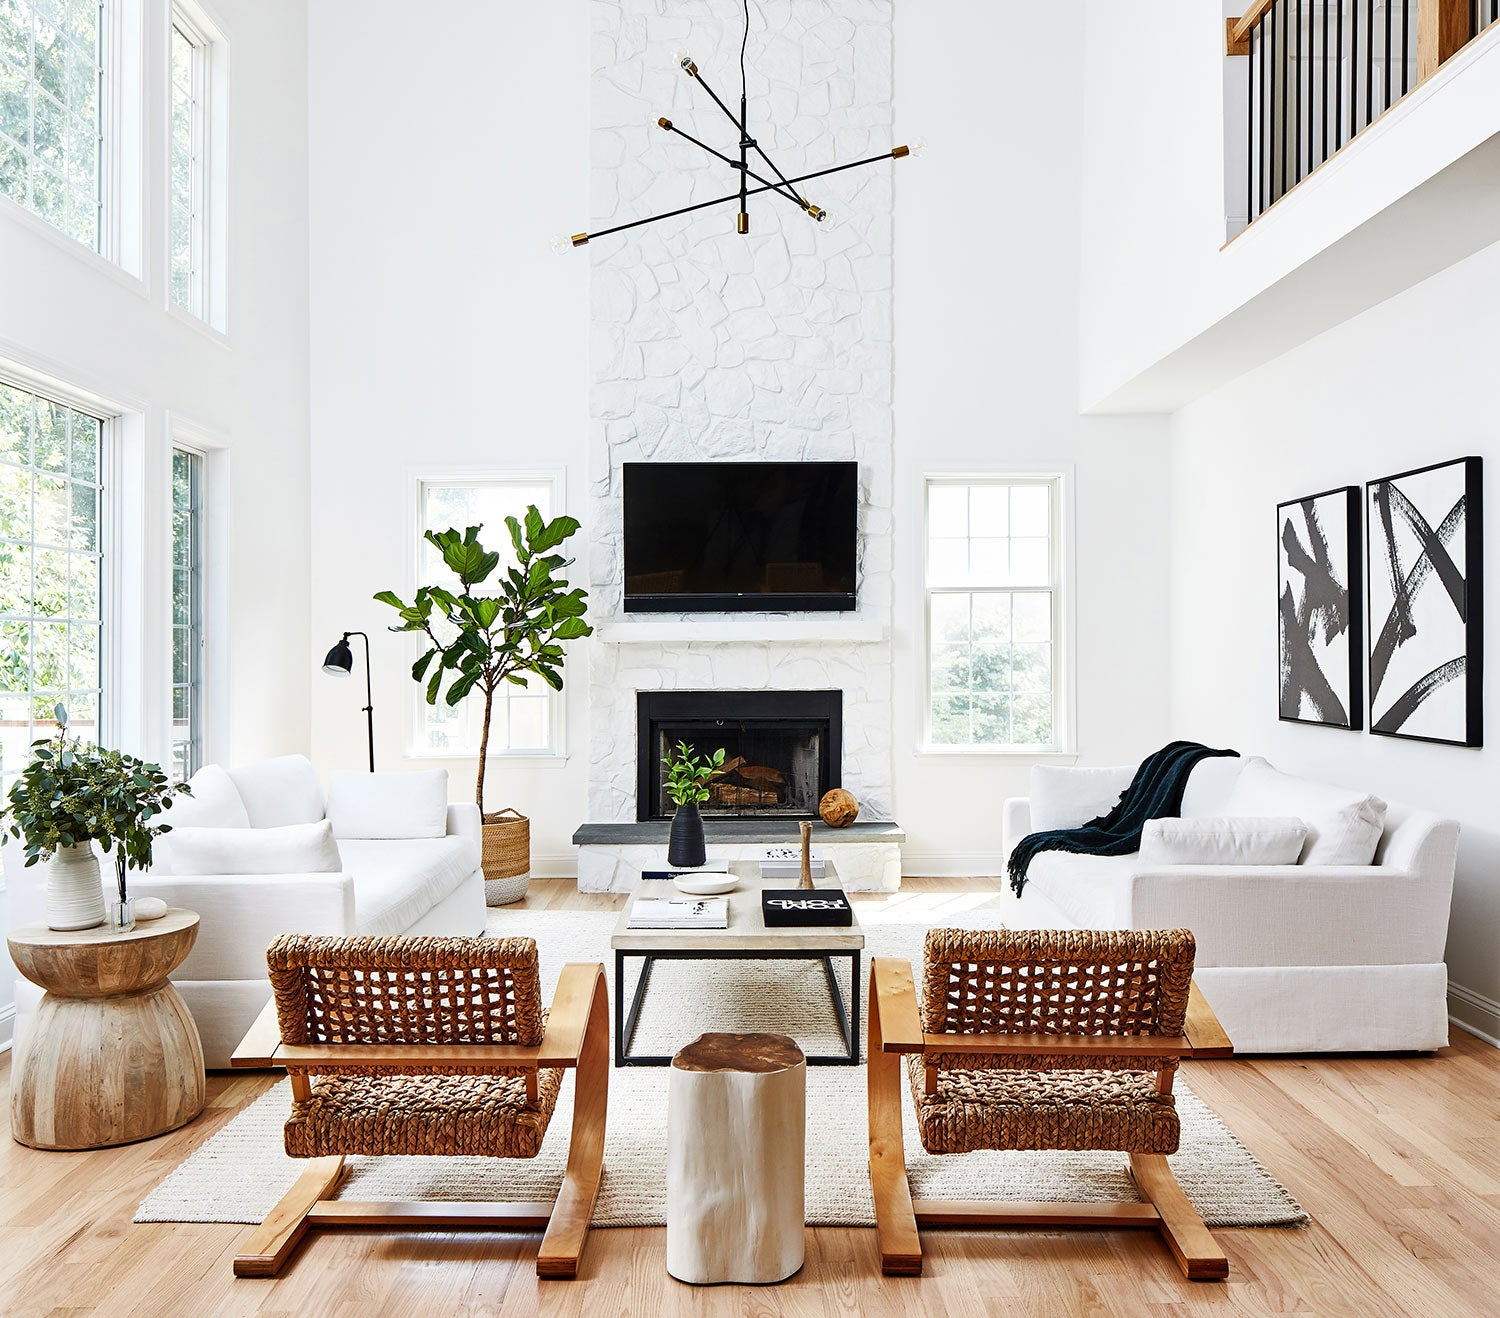 california cool interior design living room with white brick fireplace and mid century pendant